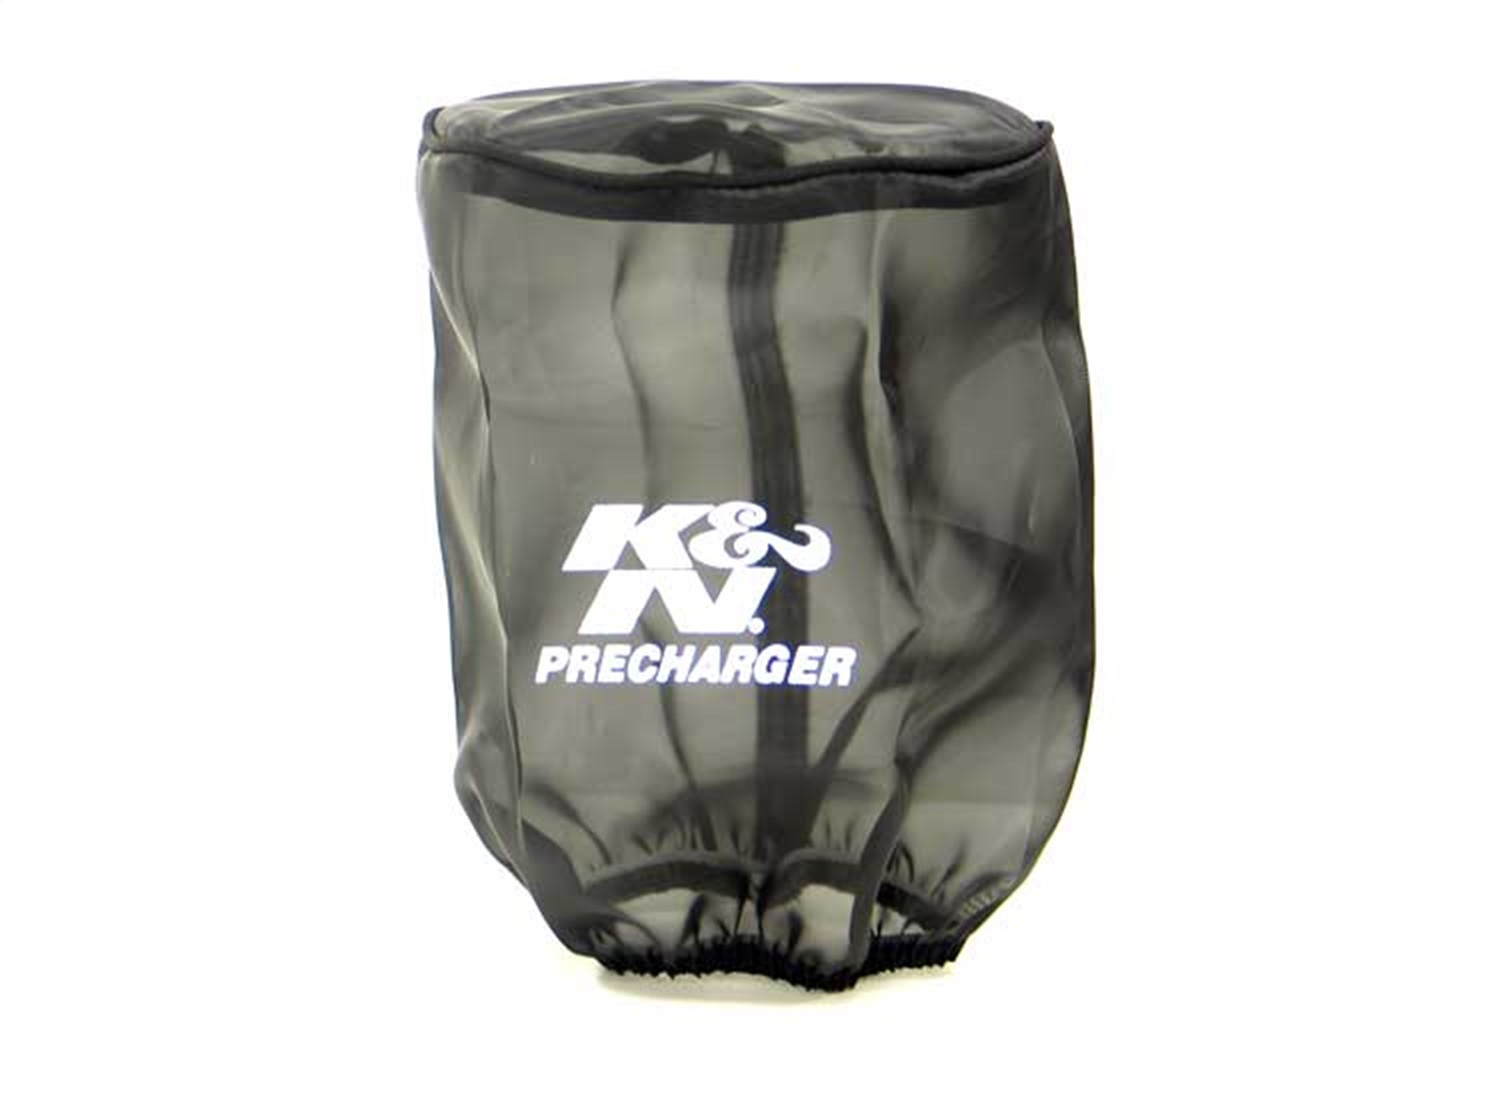 K&N PreCharger Air Filter Wrap 22-8044PK 6222-3775353